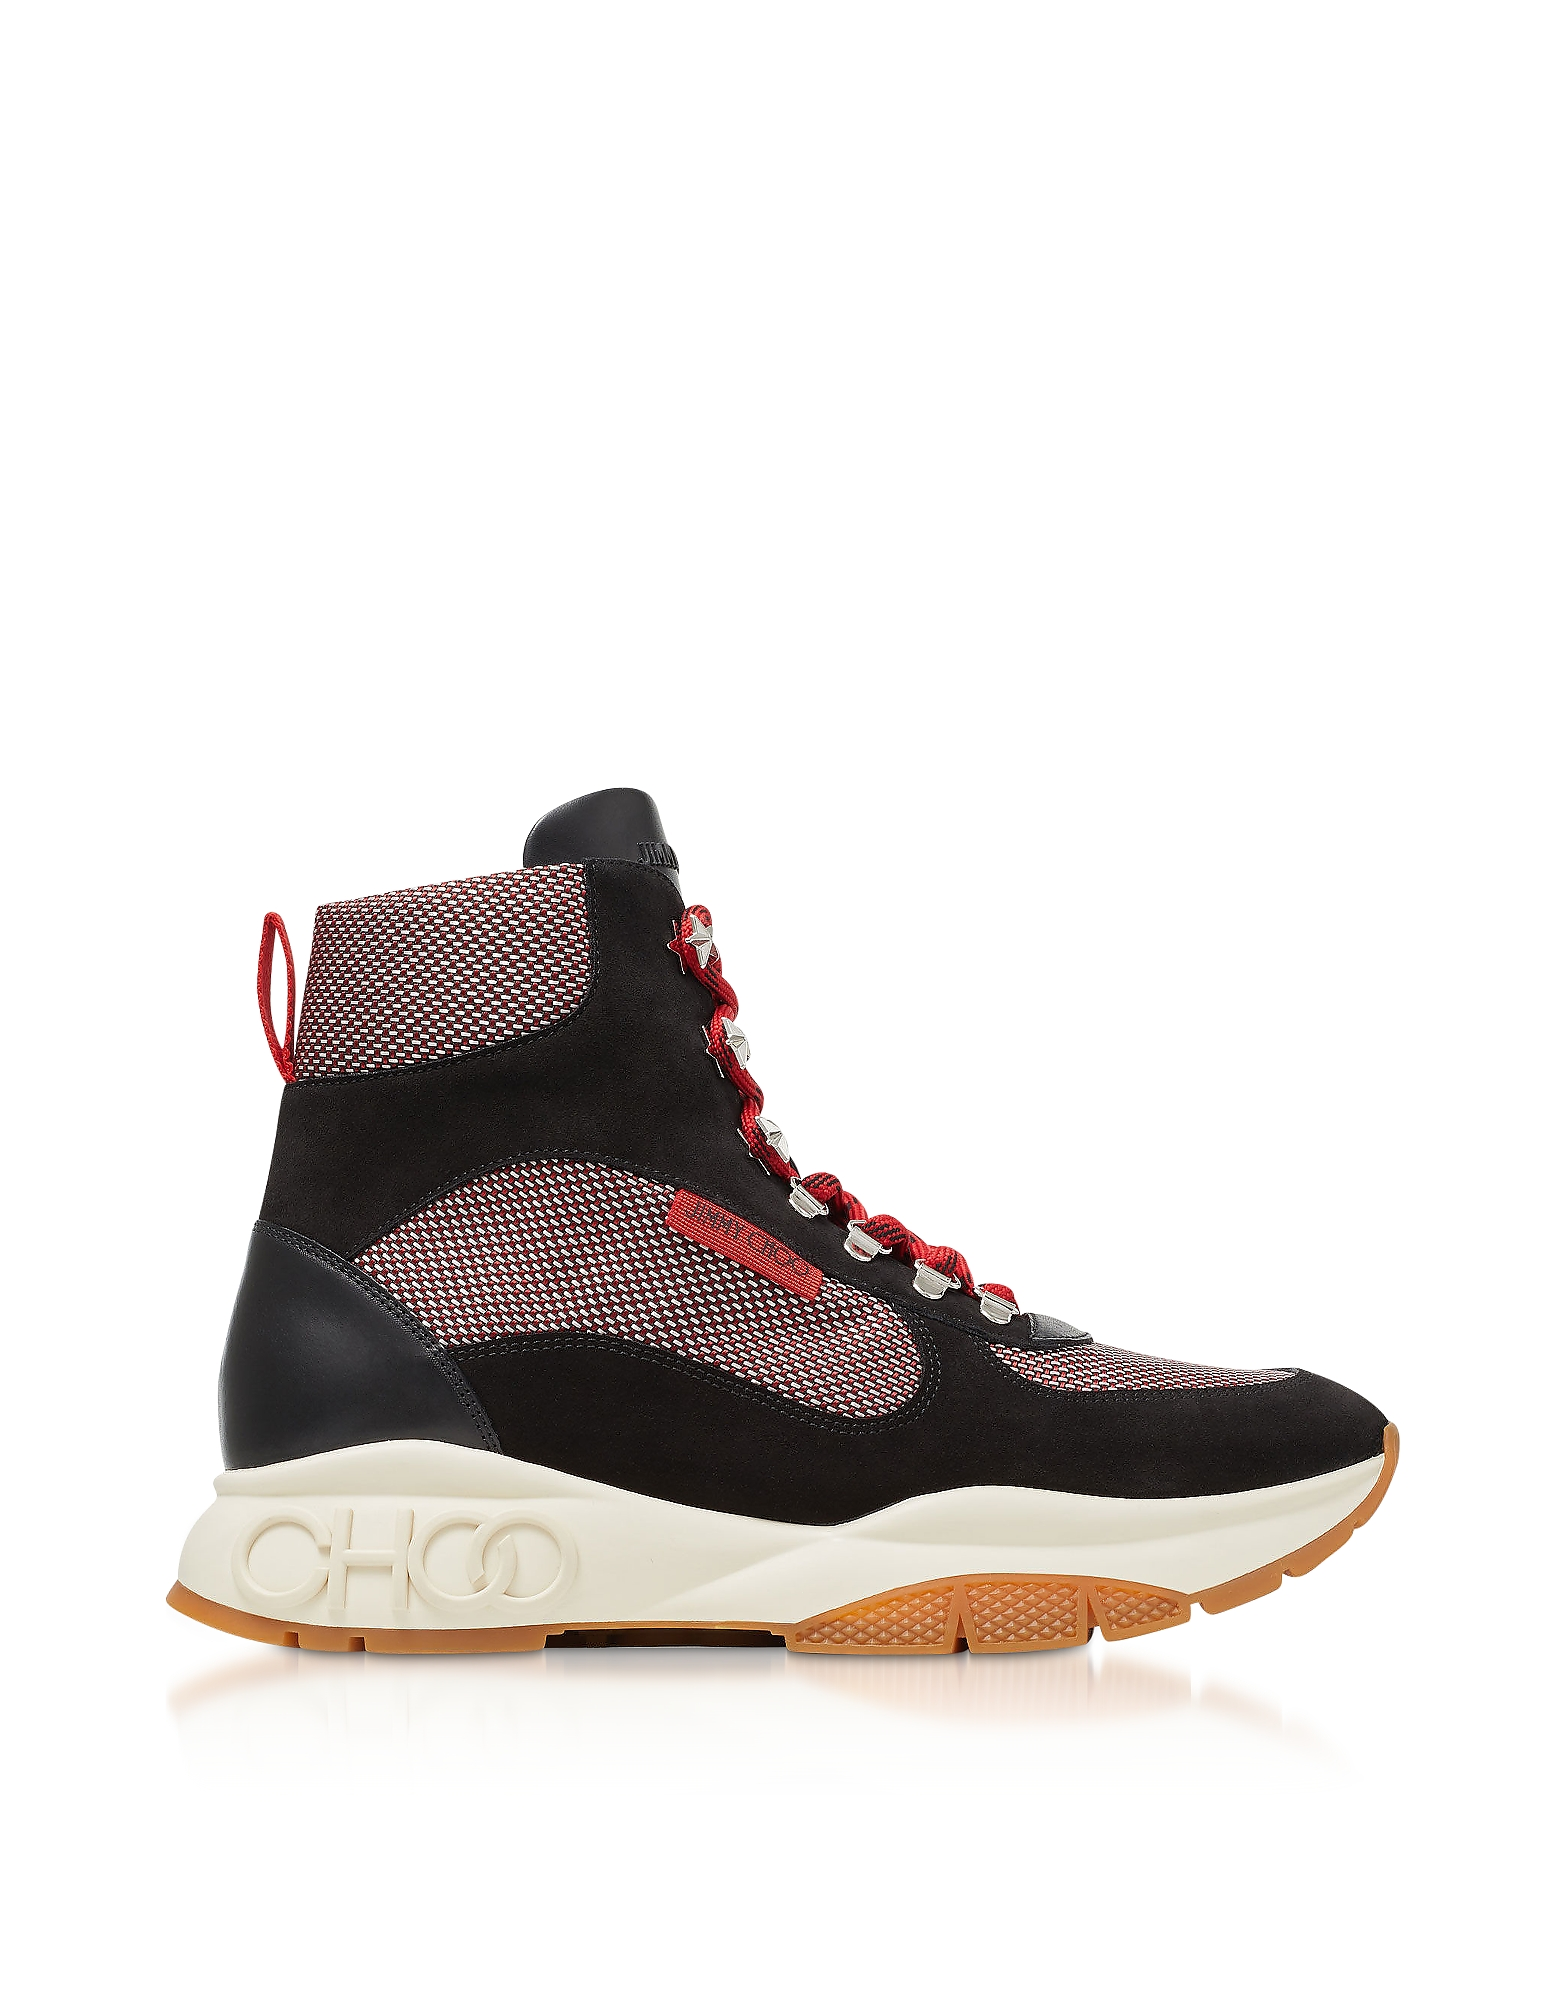 Jimmy Choo Designer Shoes, Wash Red Inca/M TEI High-Top Sneakers w/ Technical Mesh